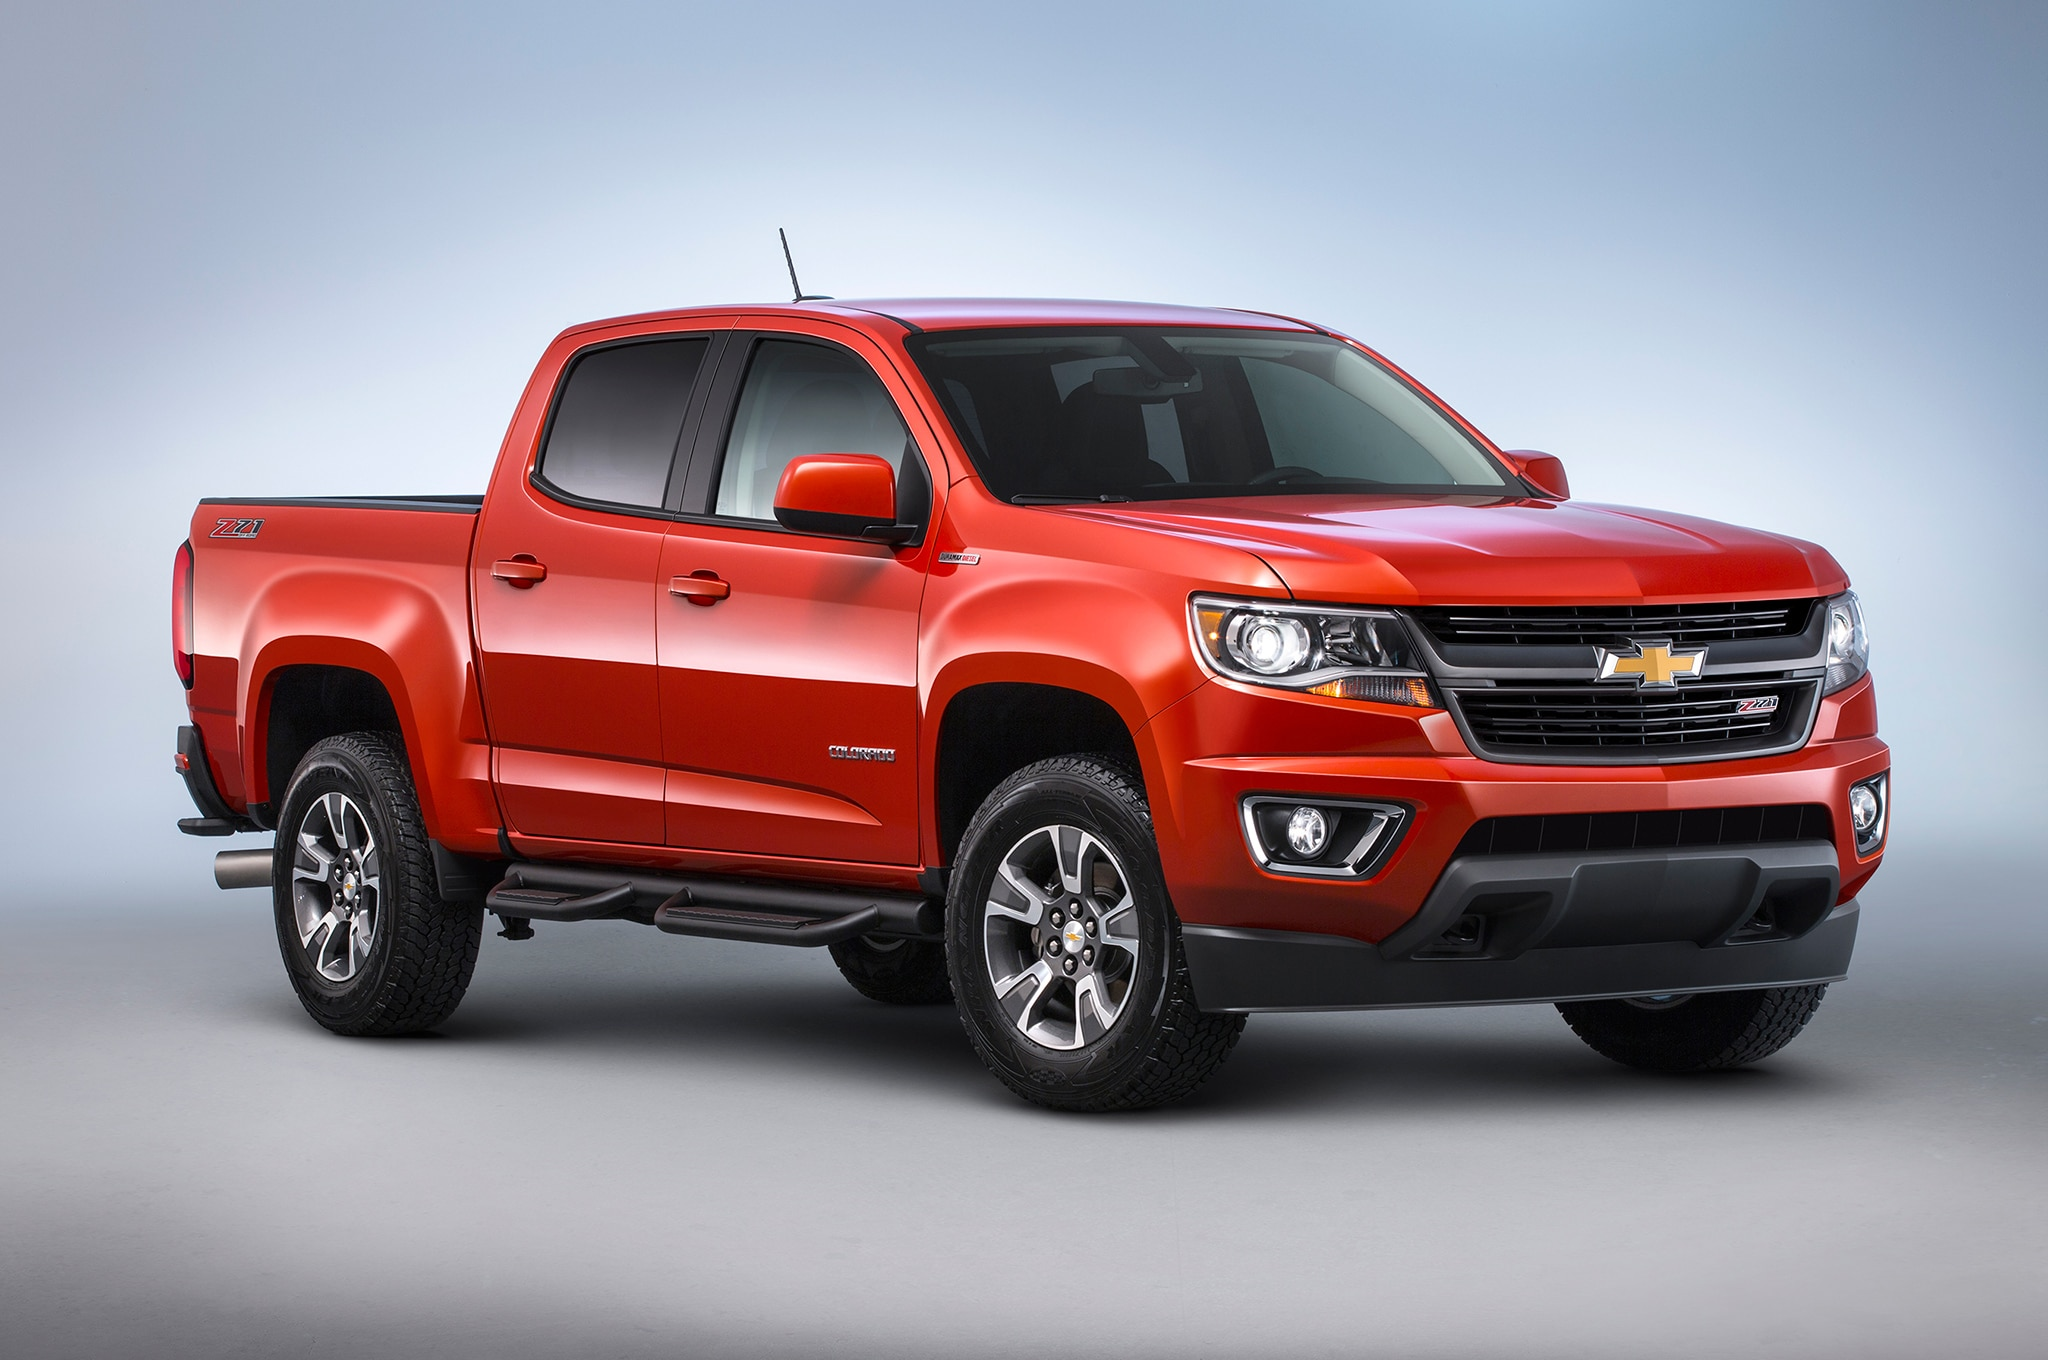 2016 Chevrolet Colorado Duramax Front Three Quarter Studio 1